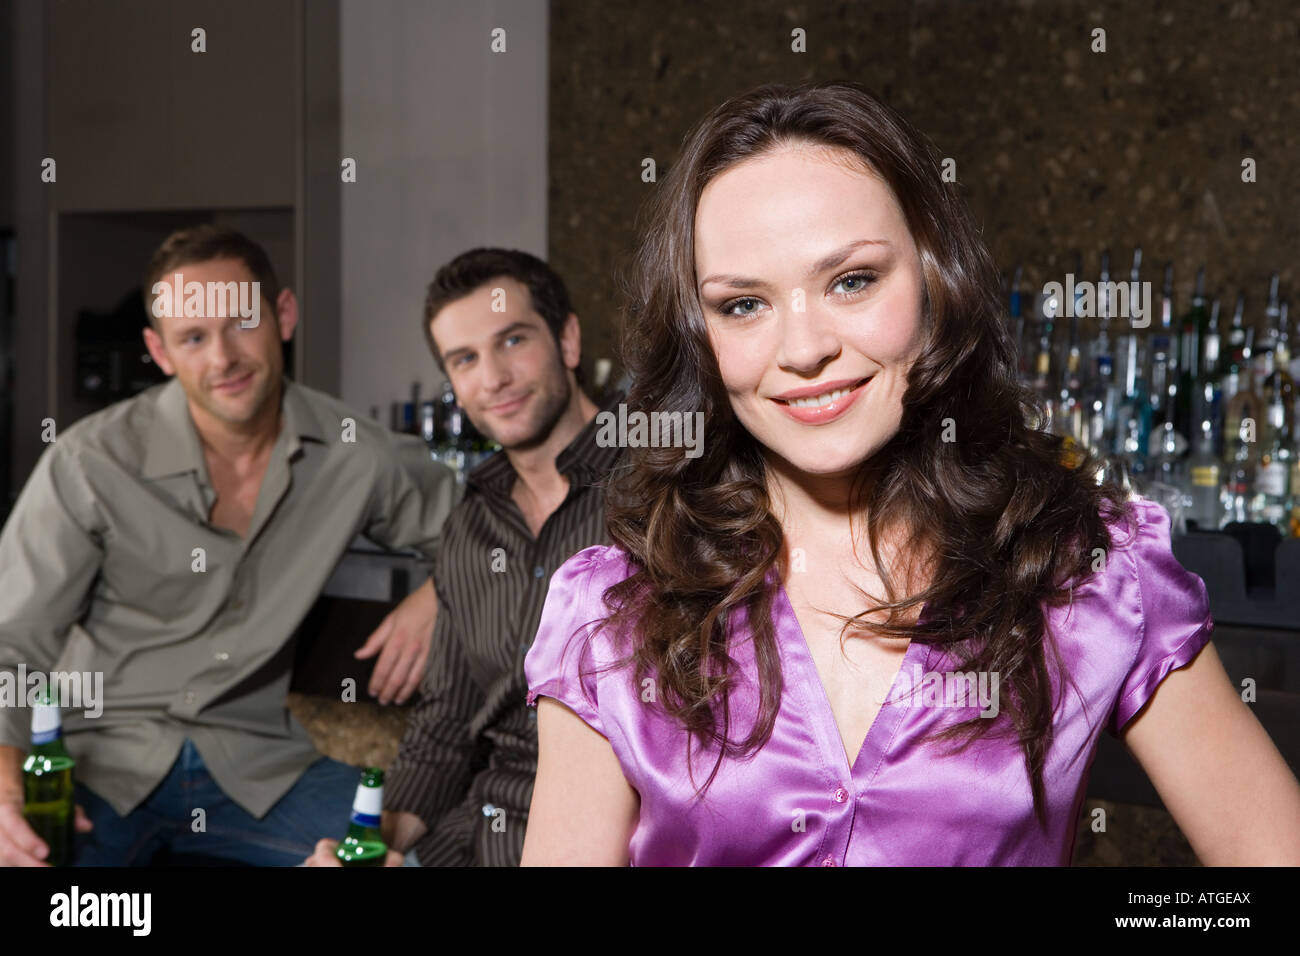 Men looking at a woman in bar Stock Photo